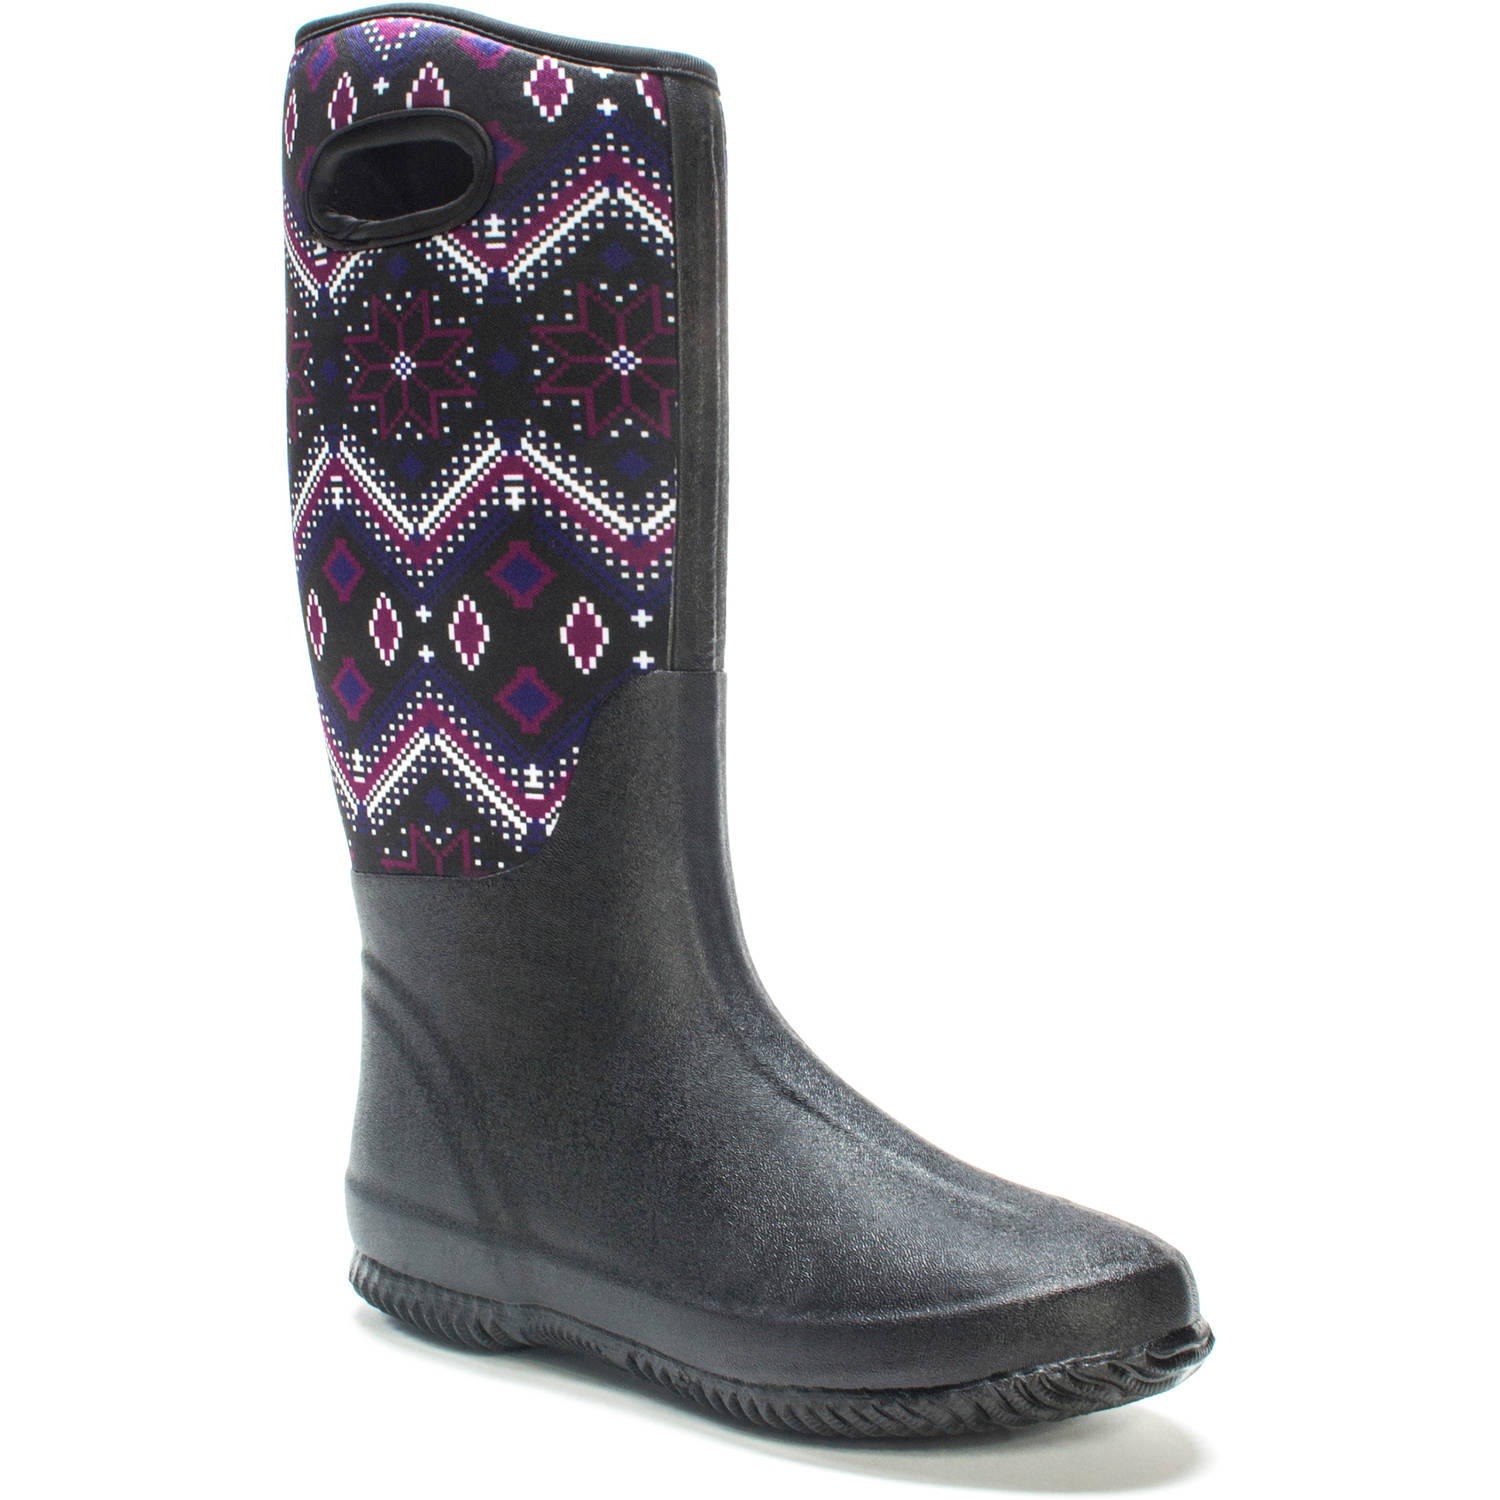 MUK LUKS Women's Karen Rainboot